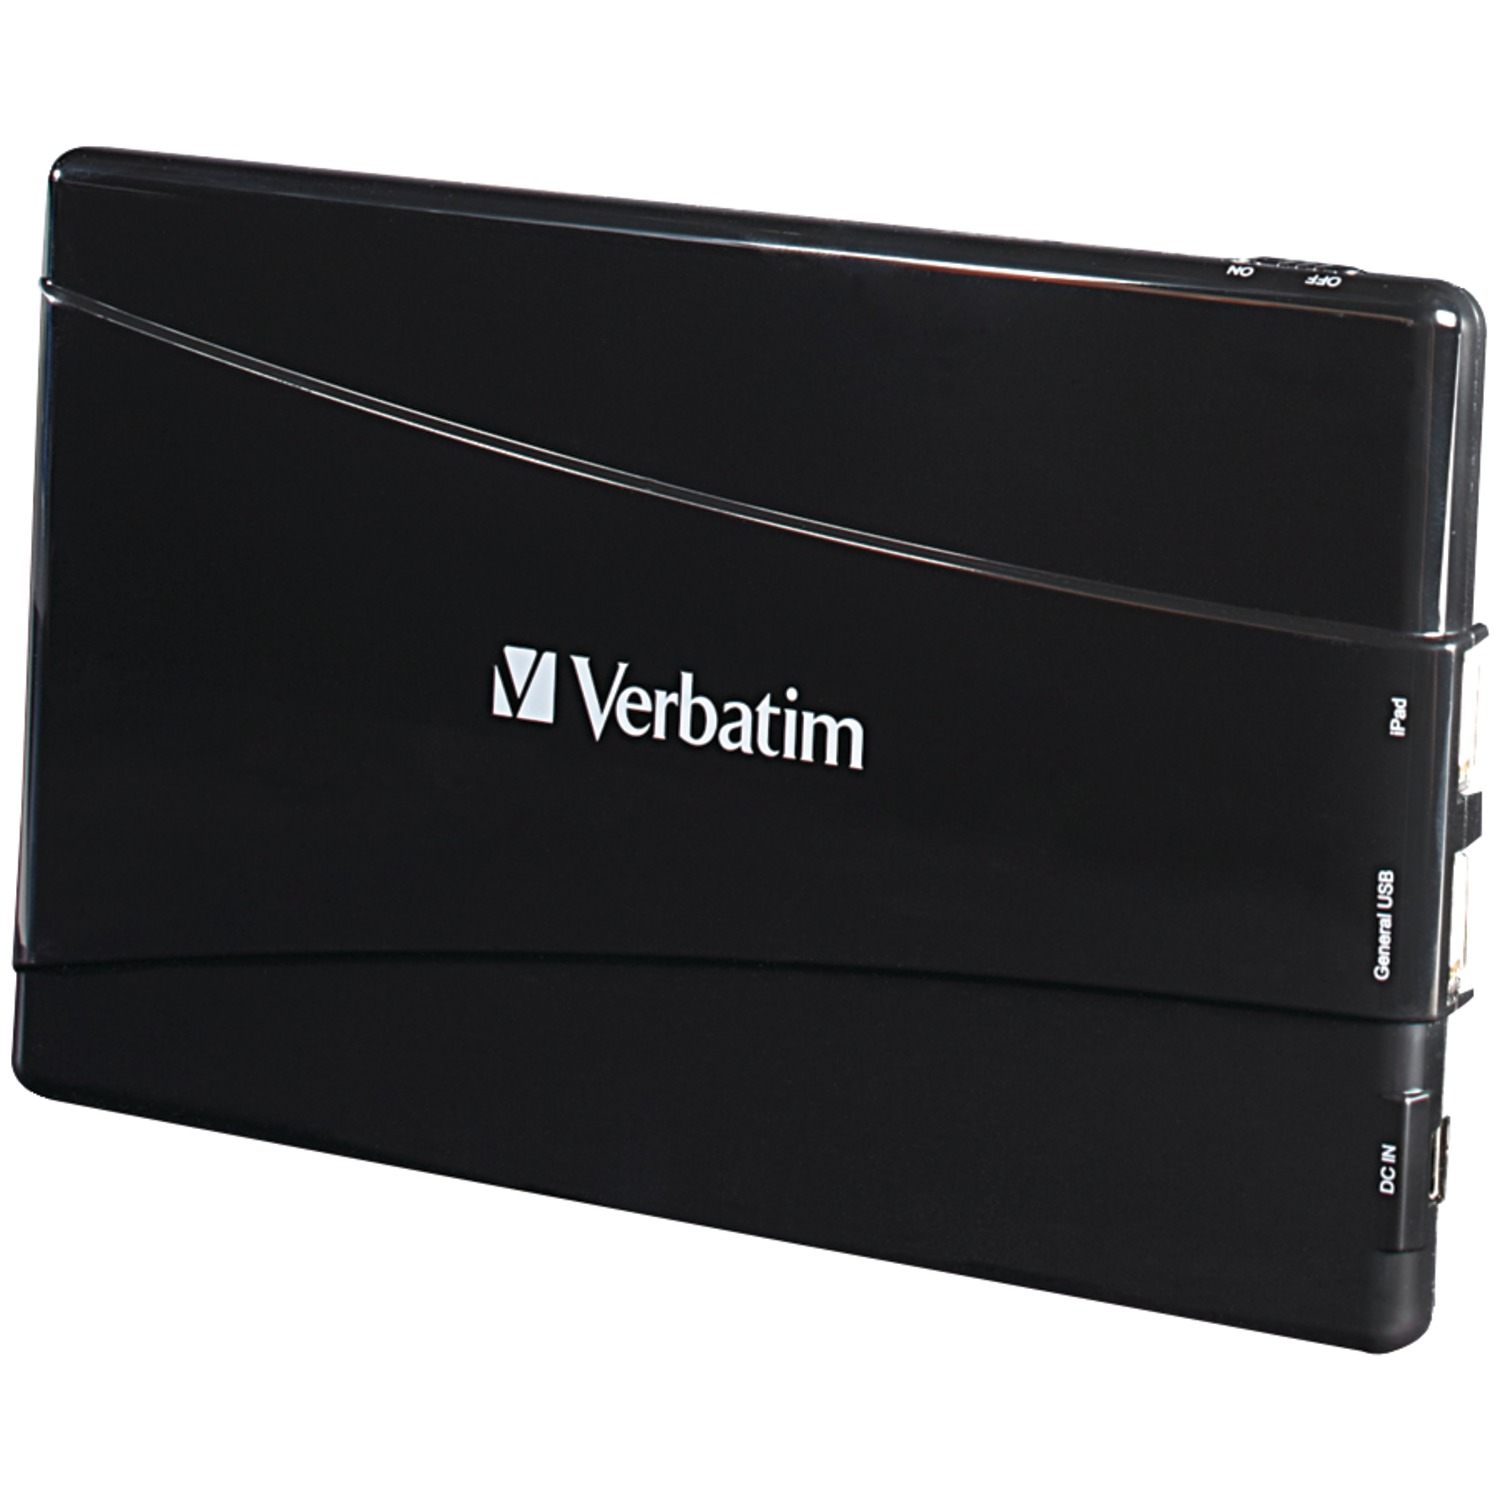 VERBATIM 97926 10000mAh Dual USB Power Pack